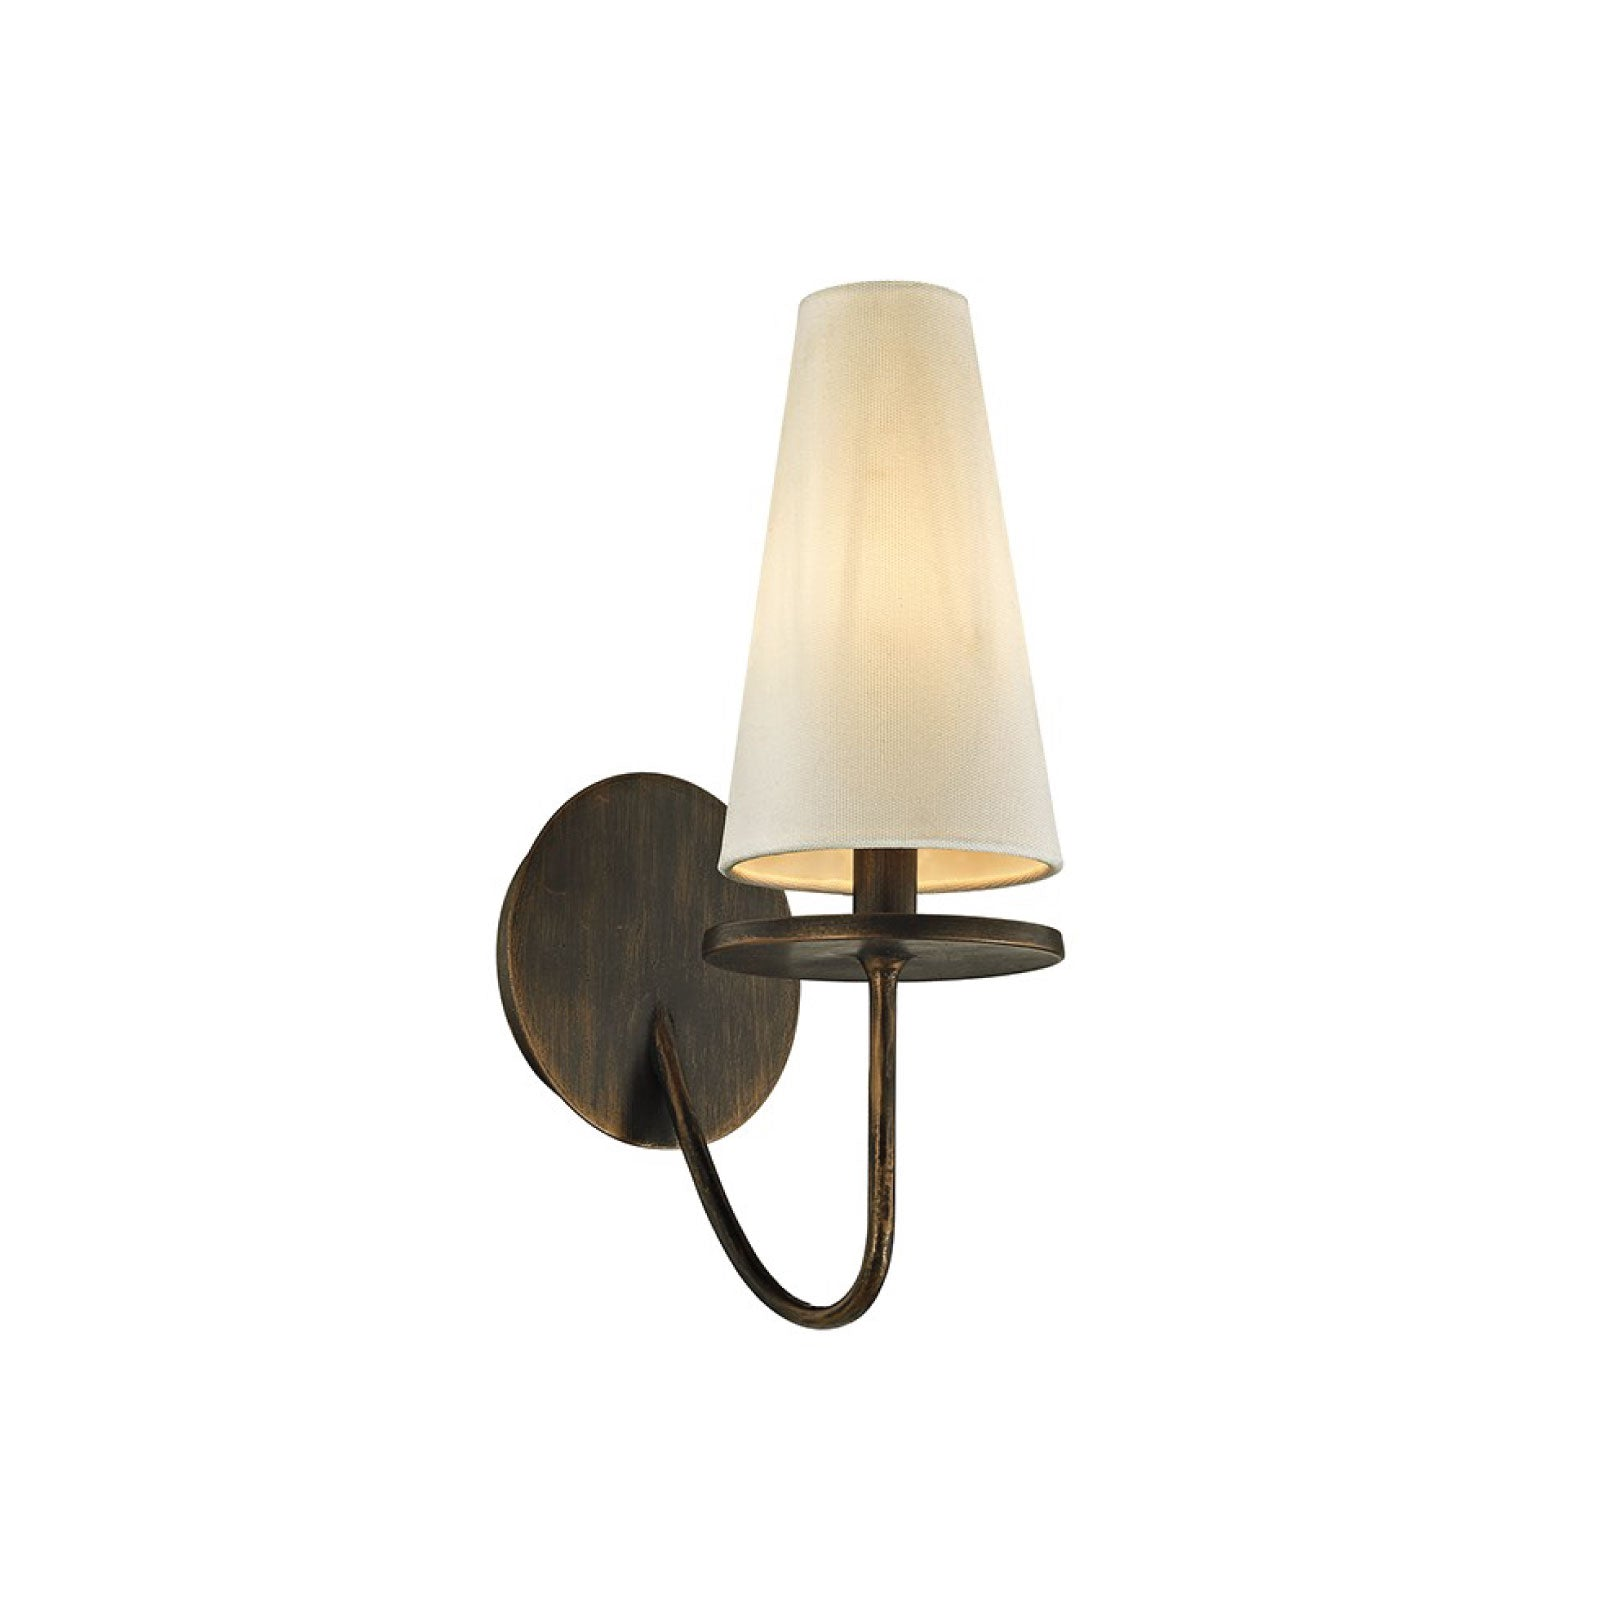 Rosecliff Sconce in Bronze